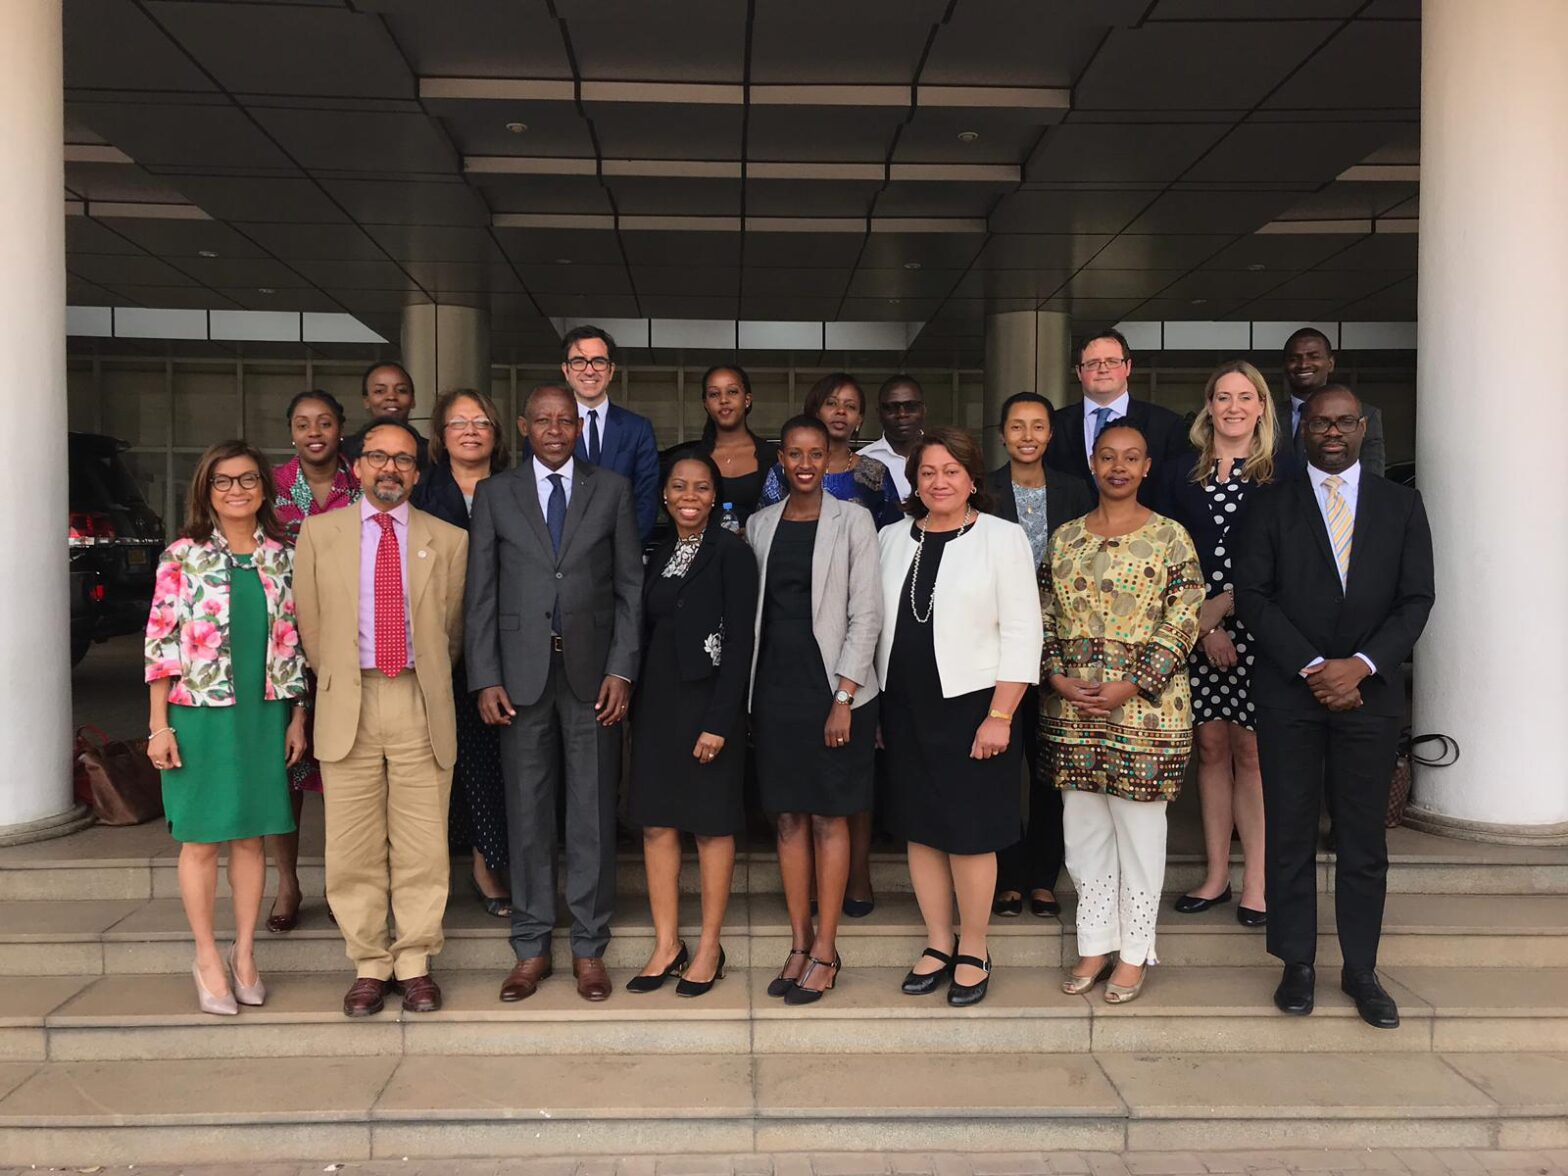 Joining the Commonwealth Secretariat's missions to Kigali to plan for the Commonwealth Business Forum